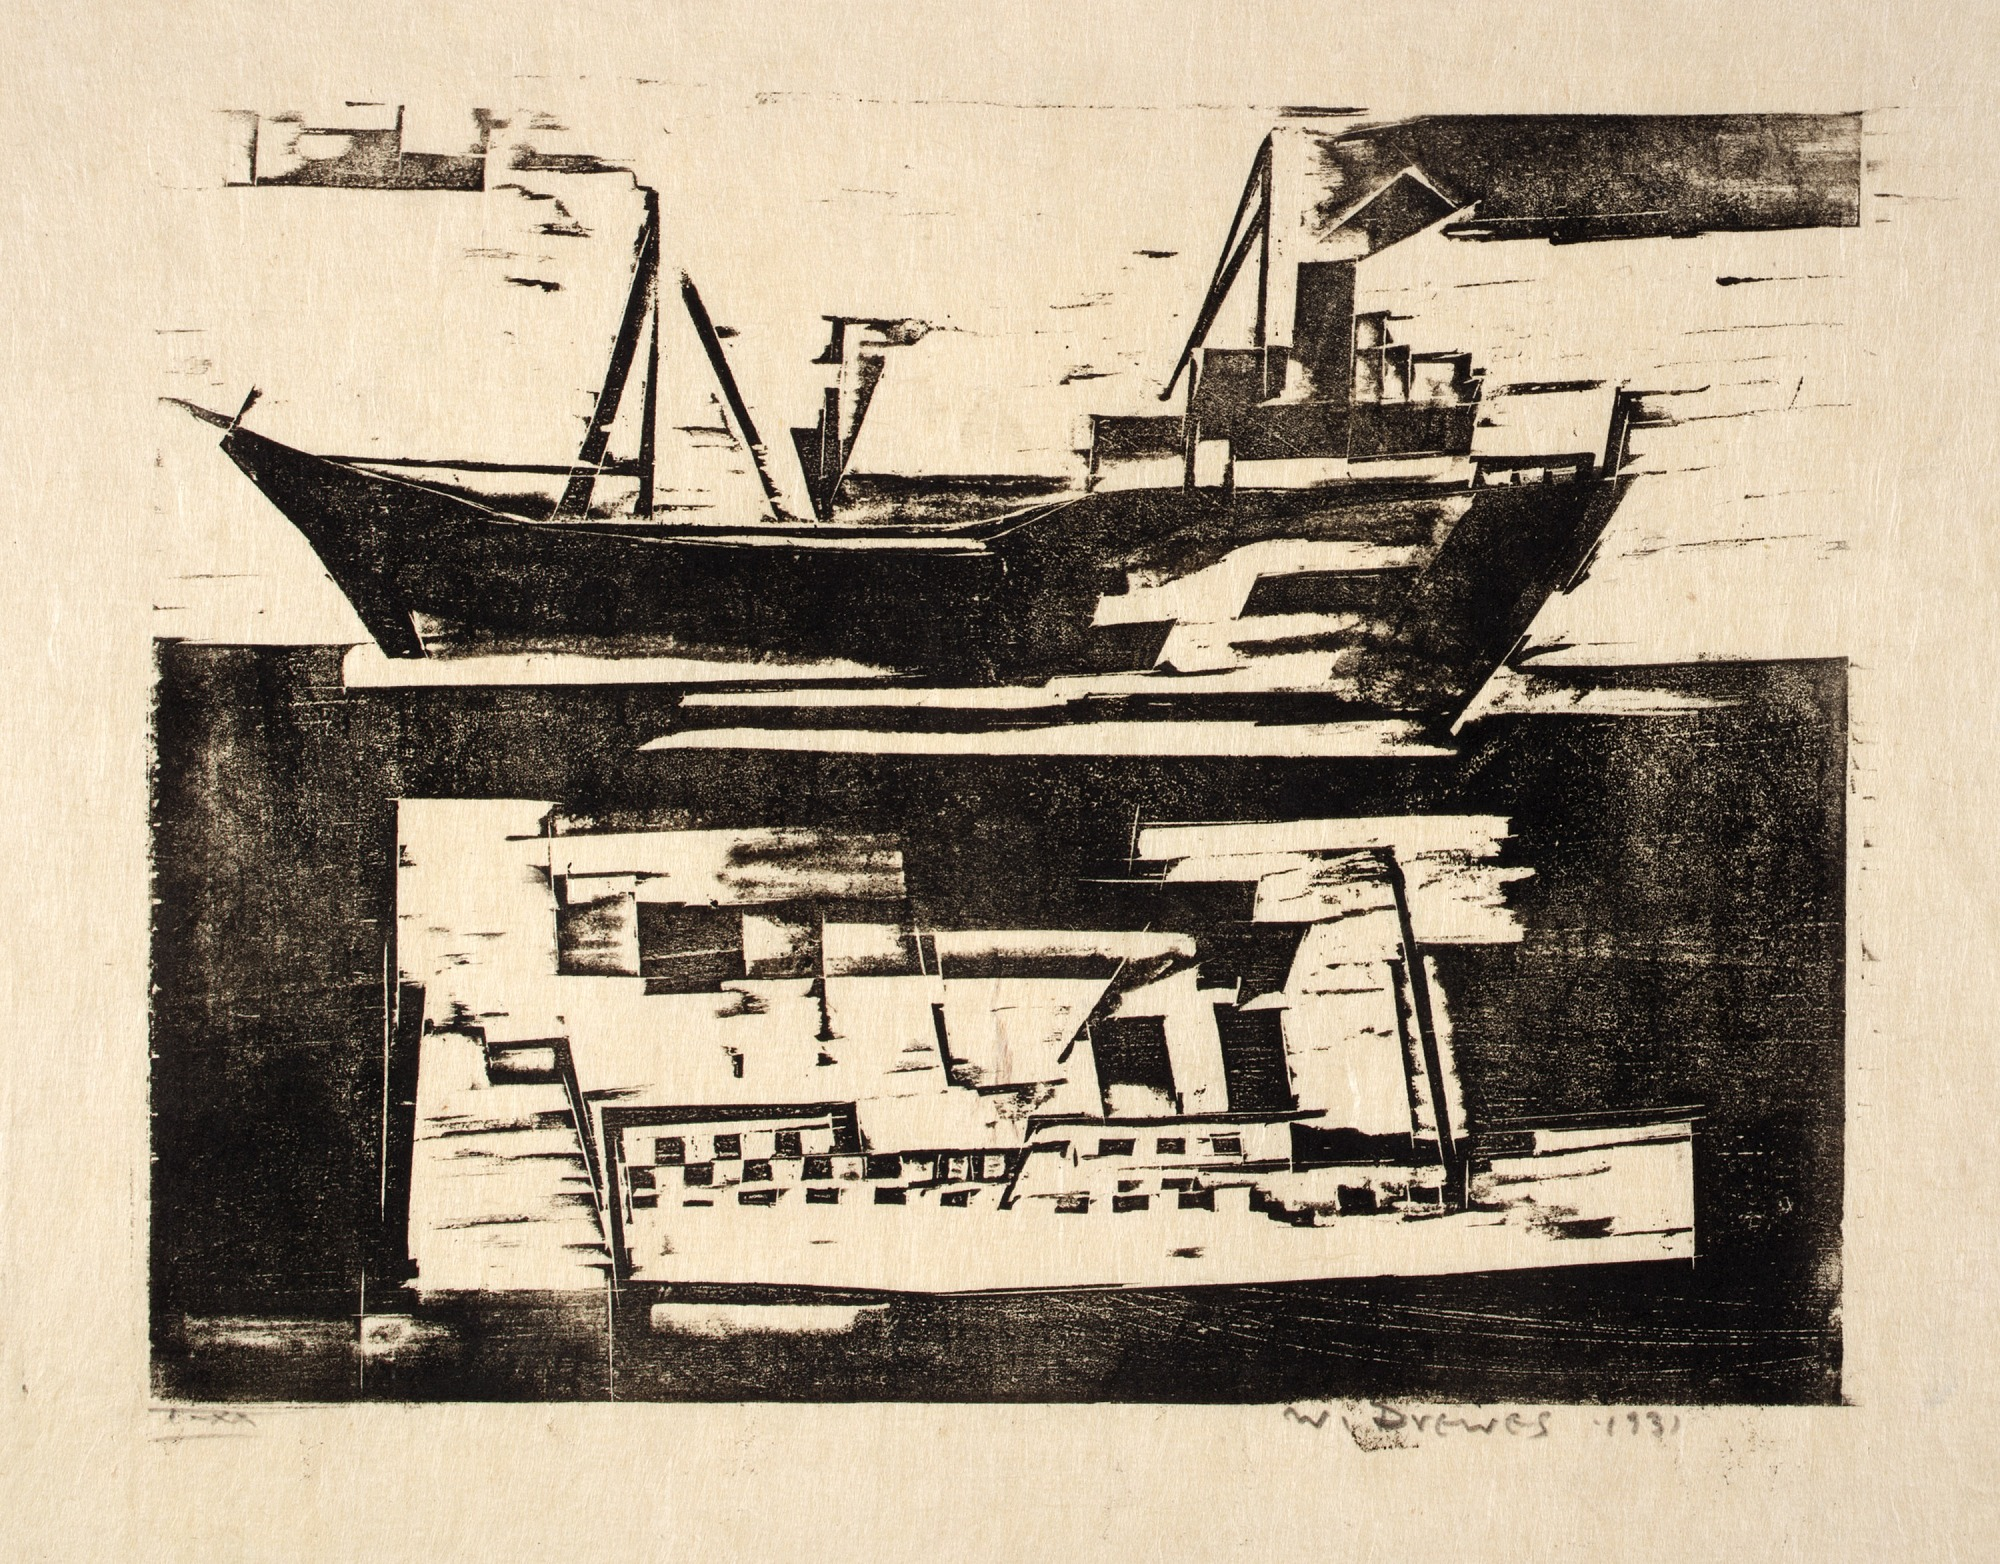 Black and White Steamboats